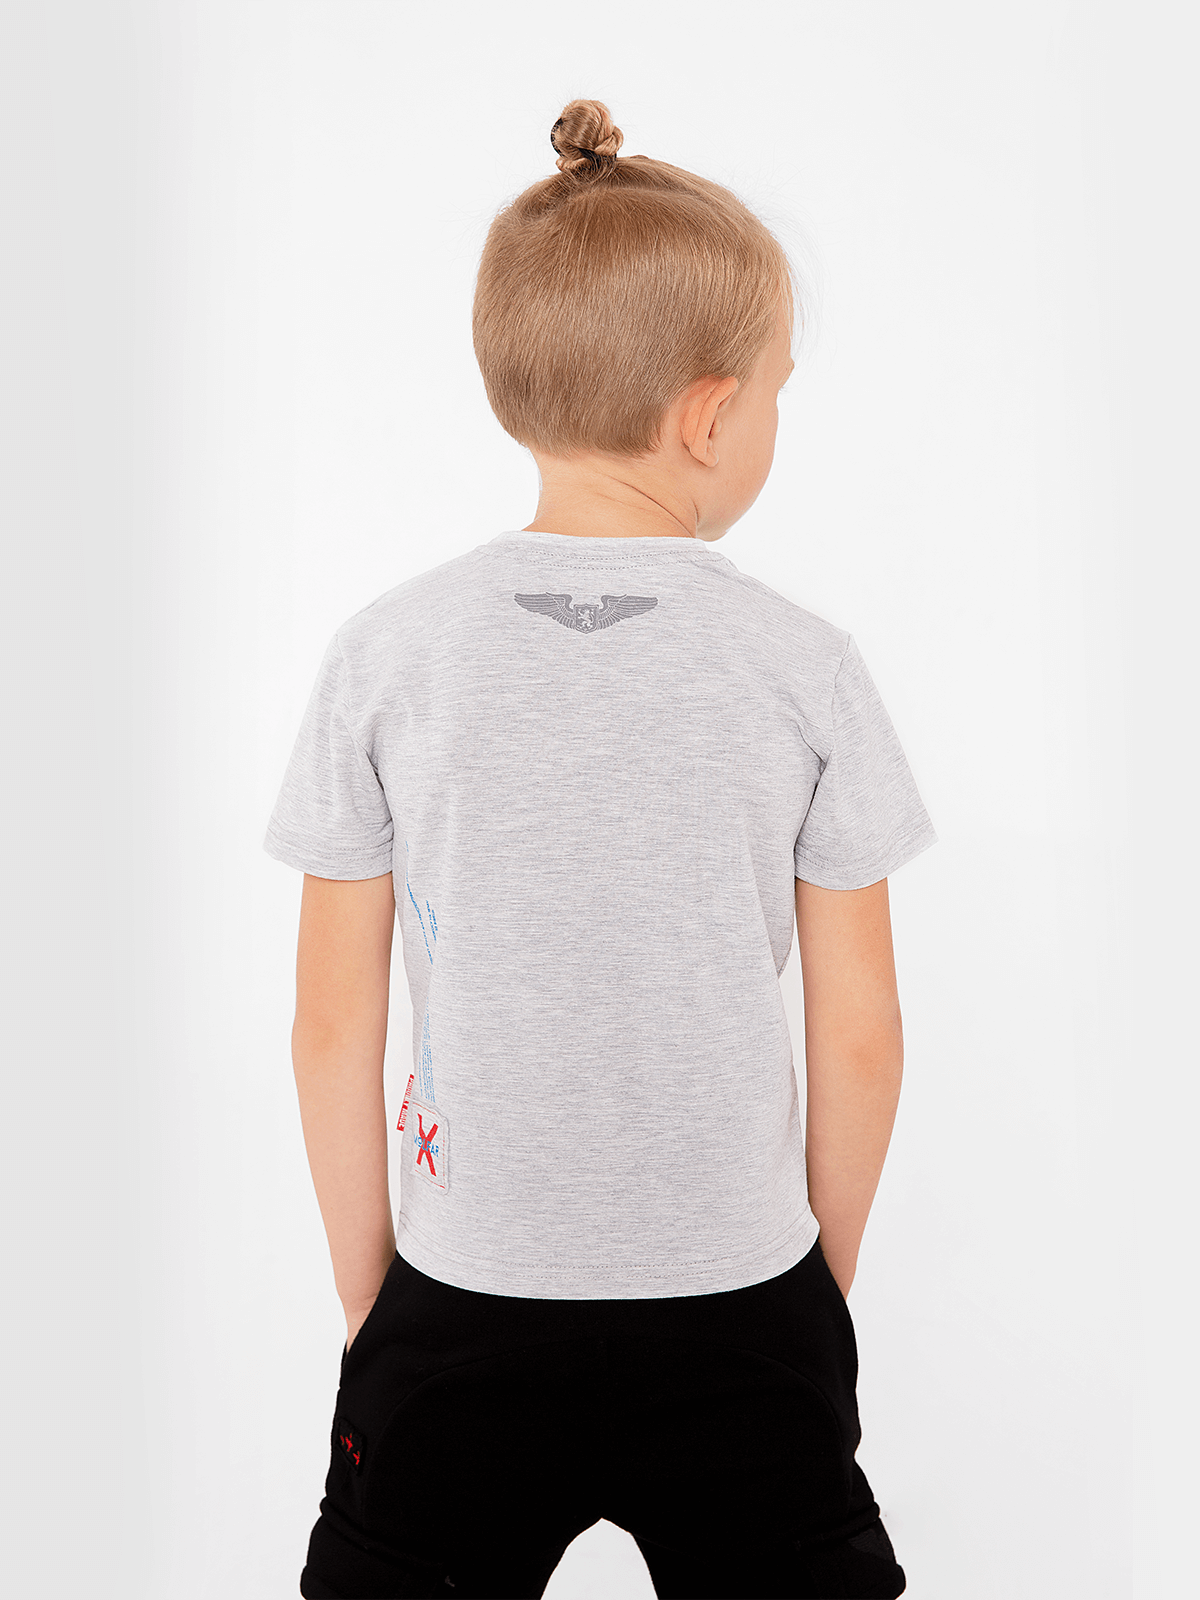 Kids T-Shirt Wjo Na Mars. Color gray.  Technique of prints applied: silkscreen printing  The color shades on your screen may differ from the original color.